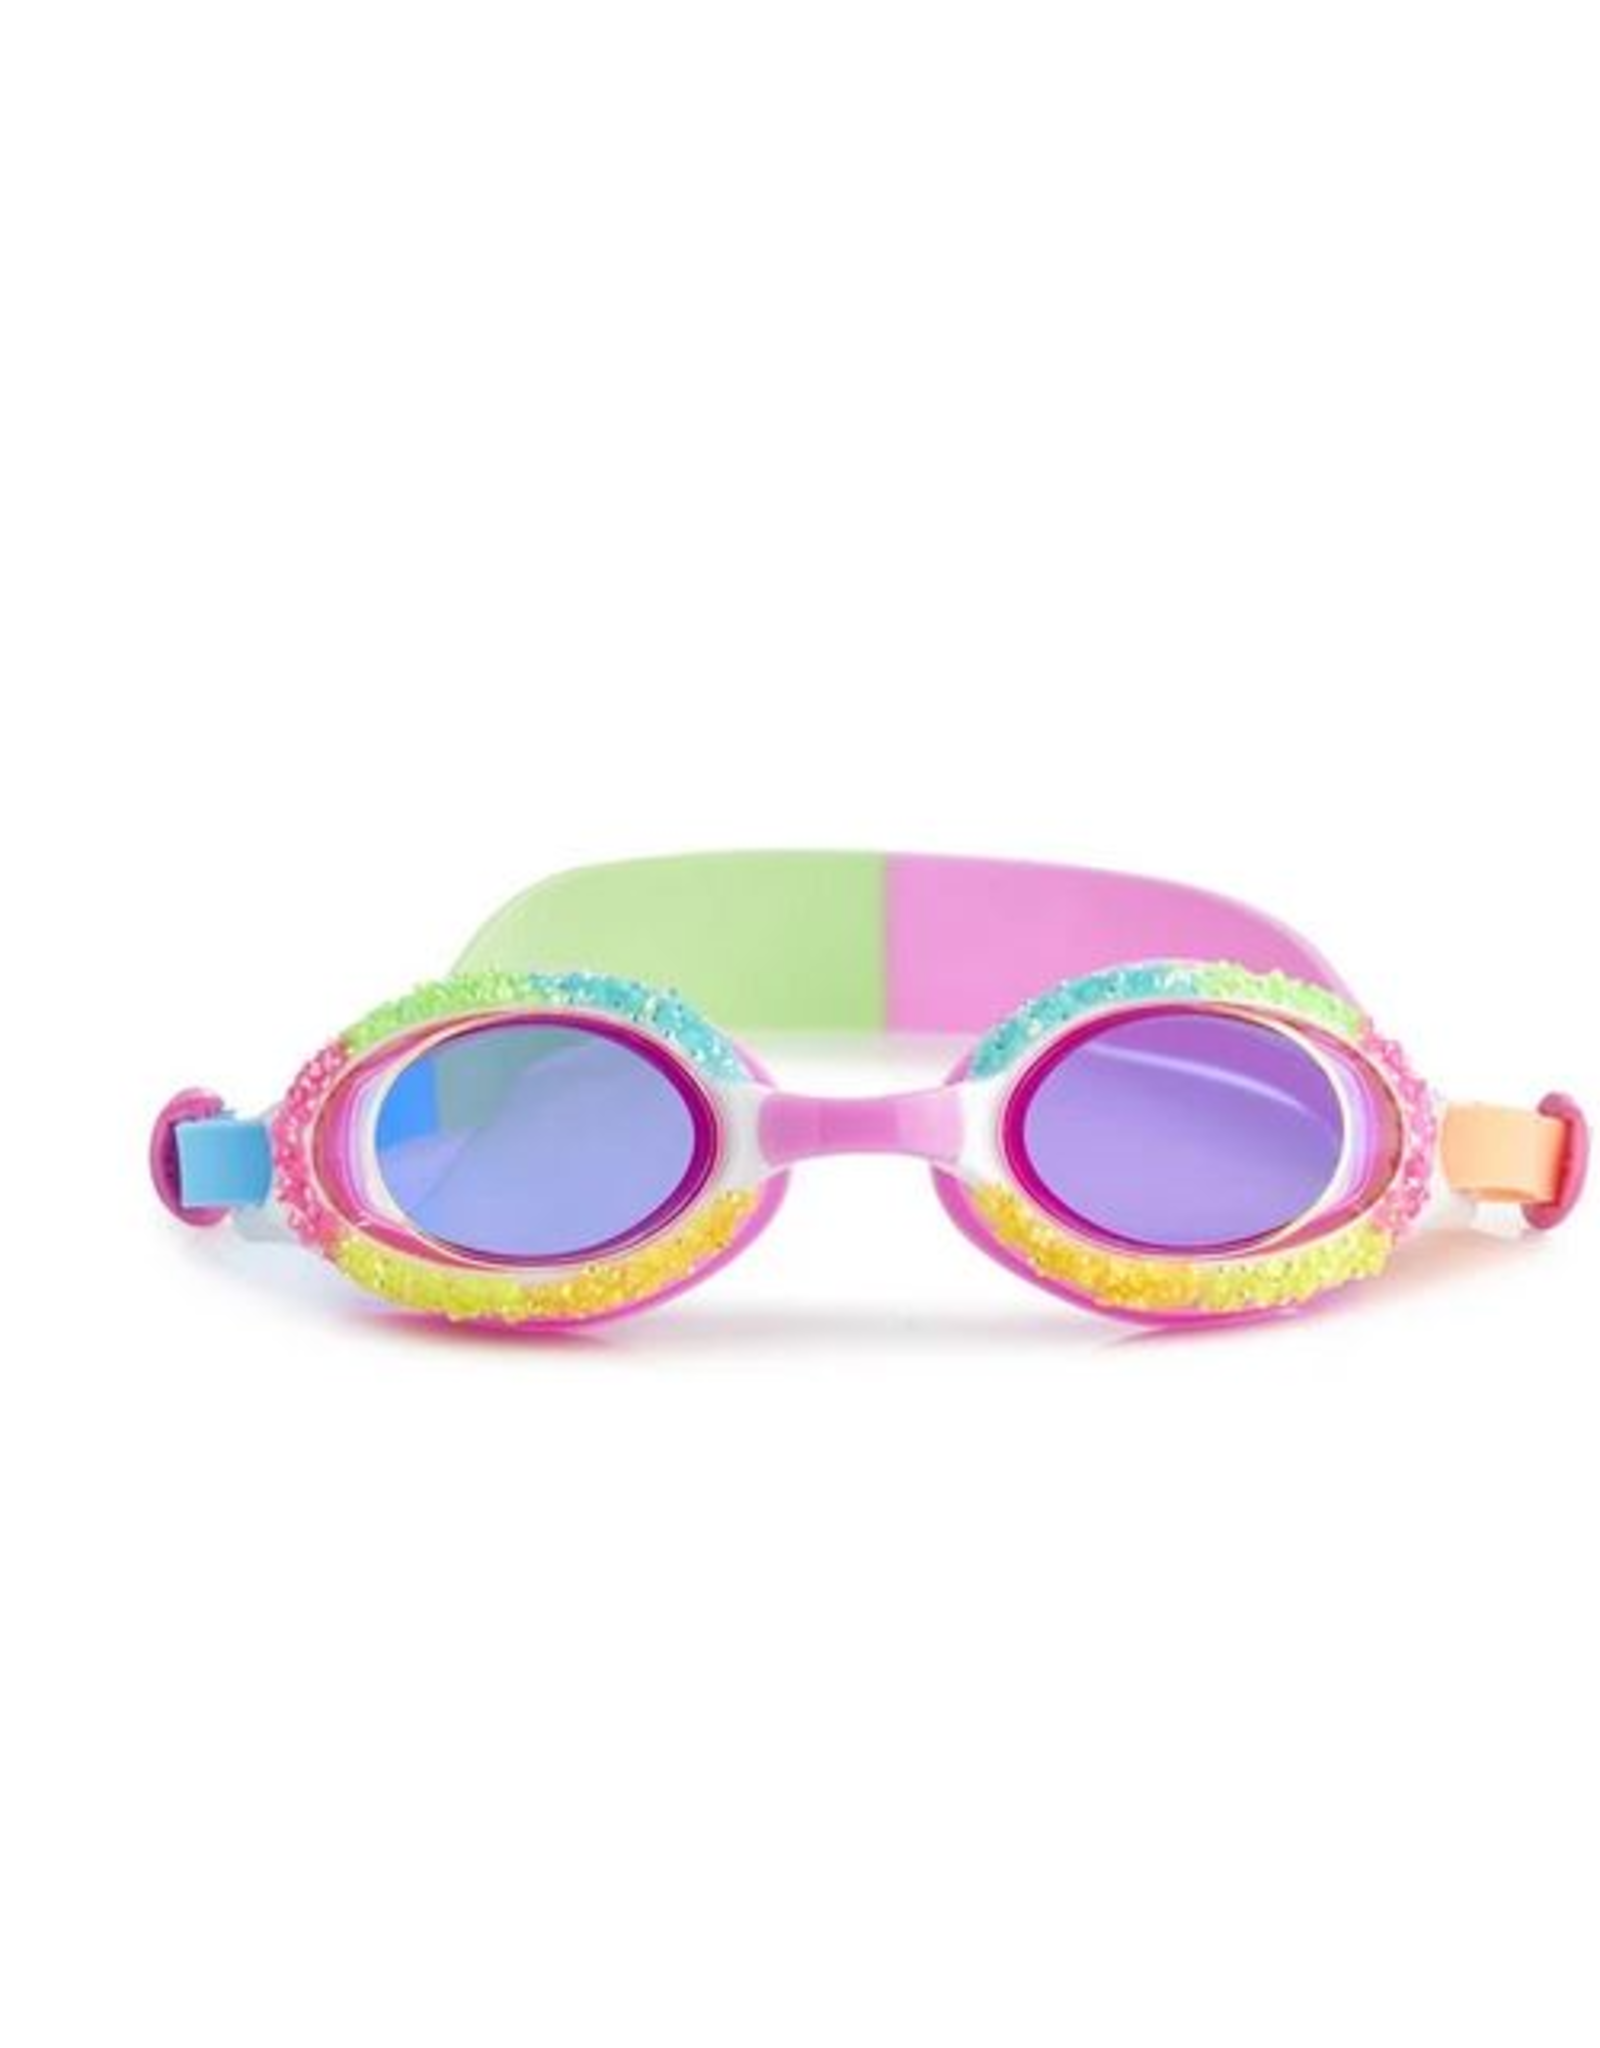 Bling20 Goggles Pop Rock 3 yrs+